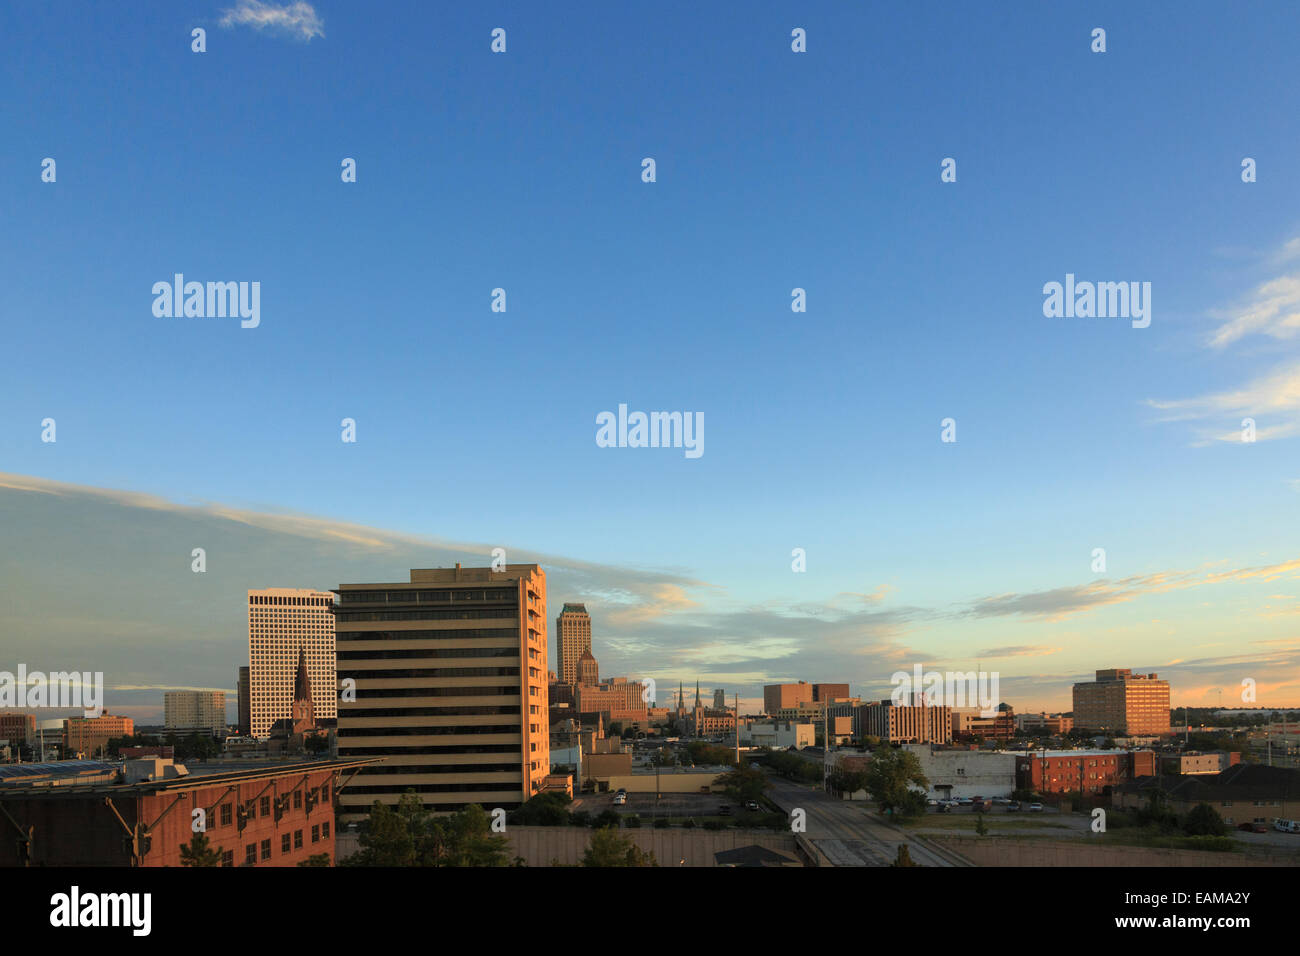 Skyline of Tulsa, Oklahoma at Sunrise Stock Photo